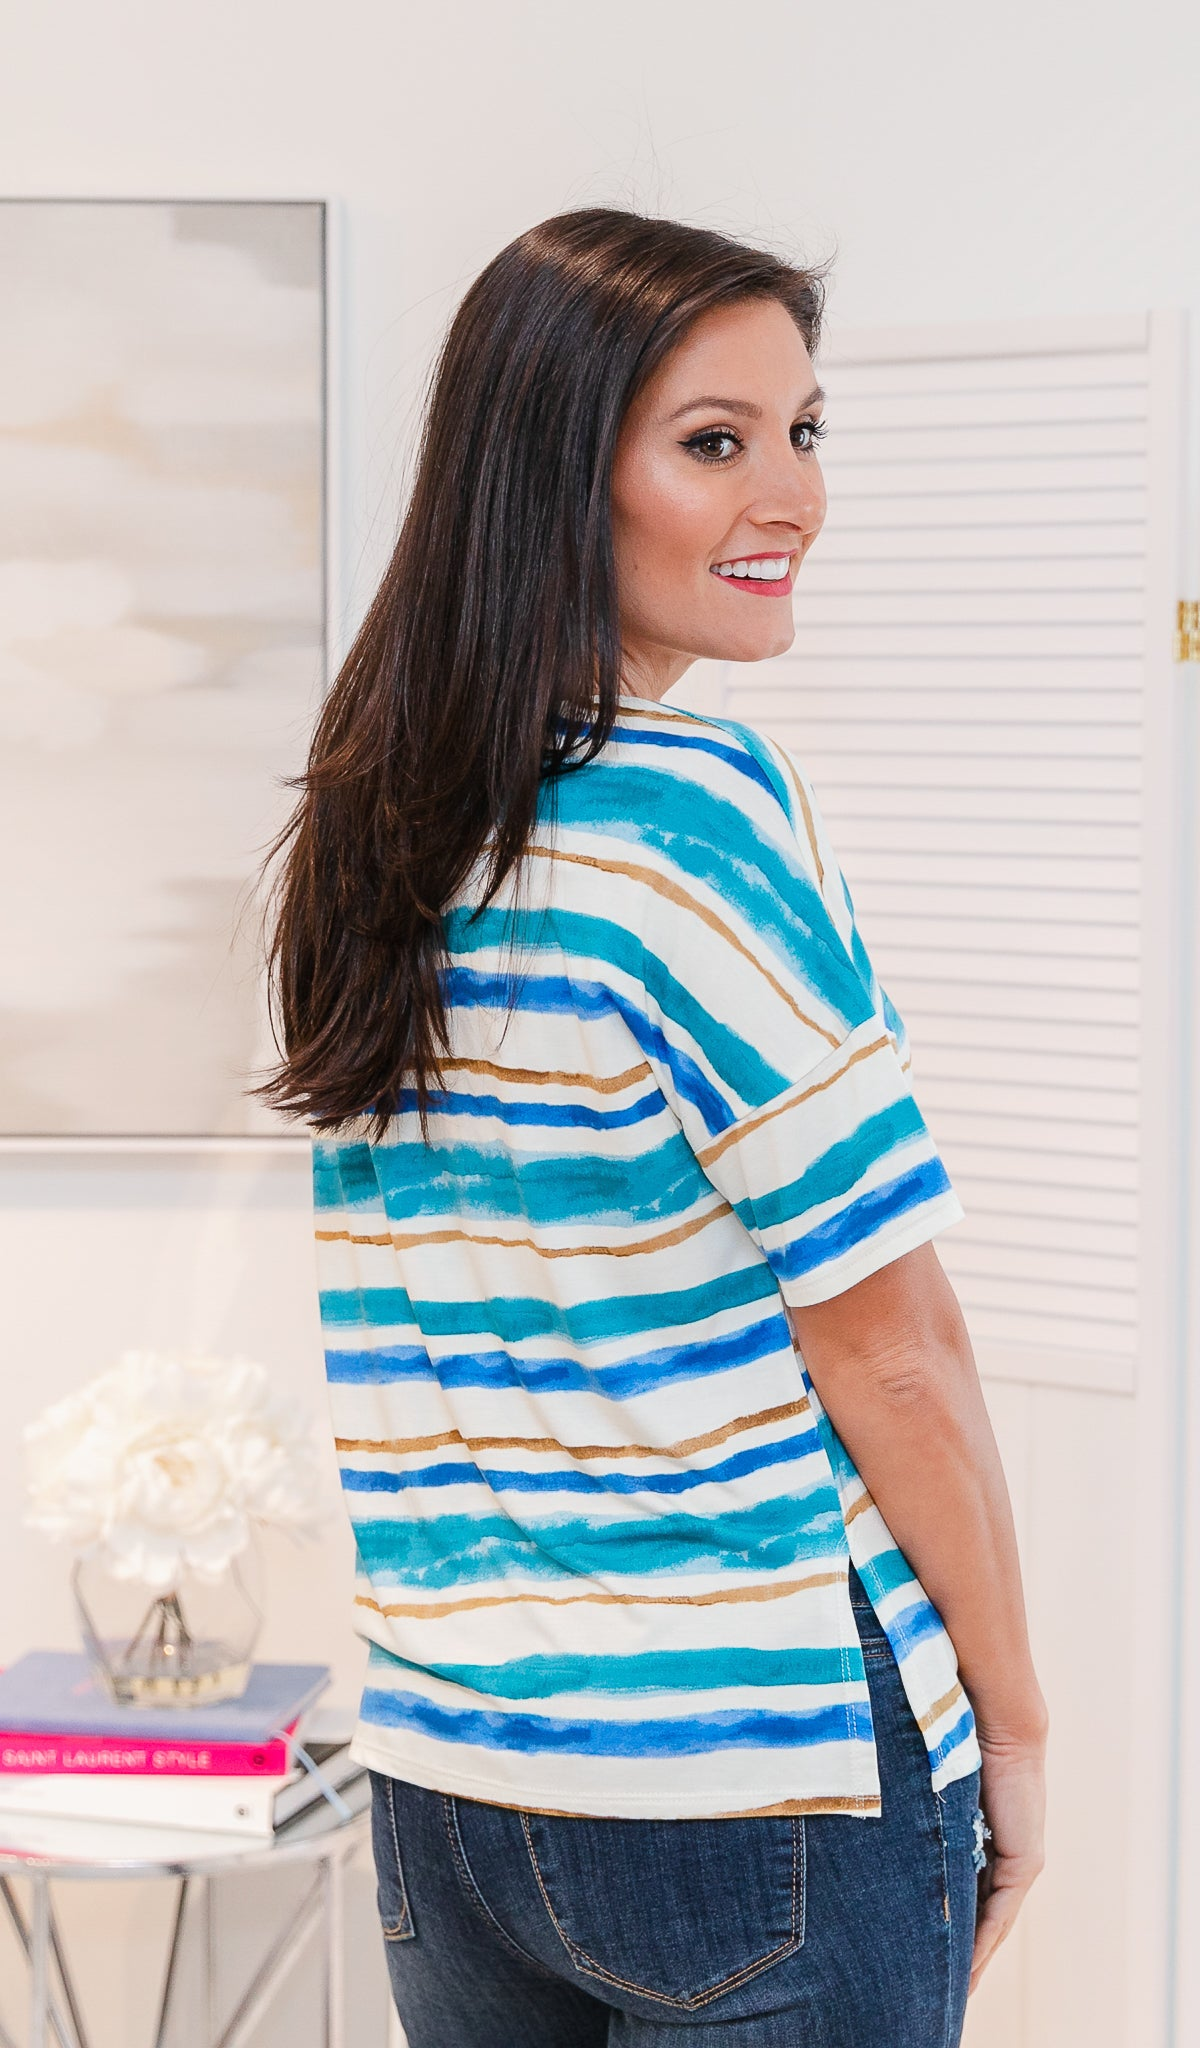 Life Of Comfort Top - Ivory, Blue